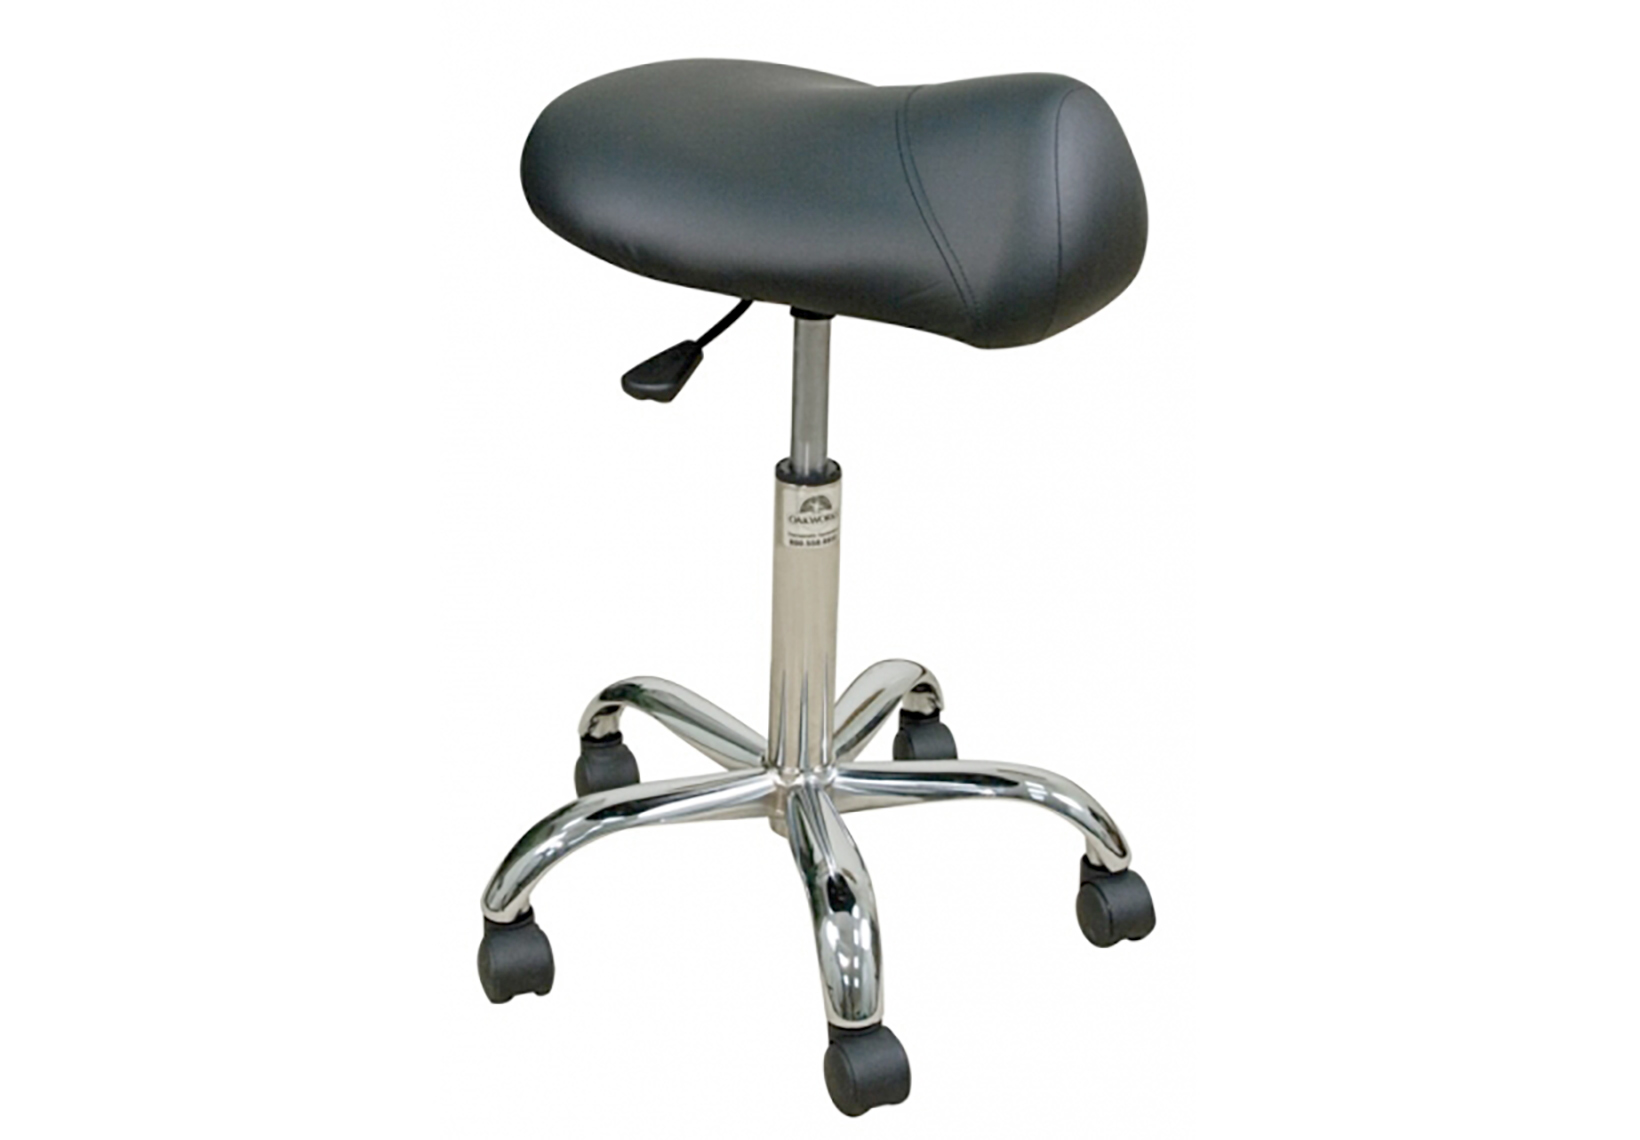 Professional Stool with Saddle Seat - Low Height Range